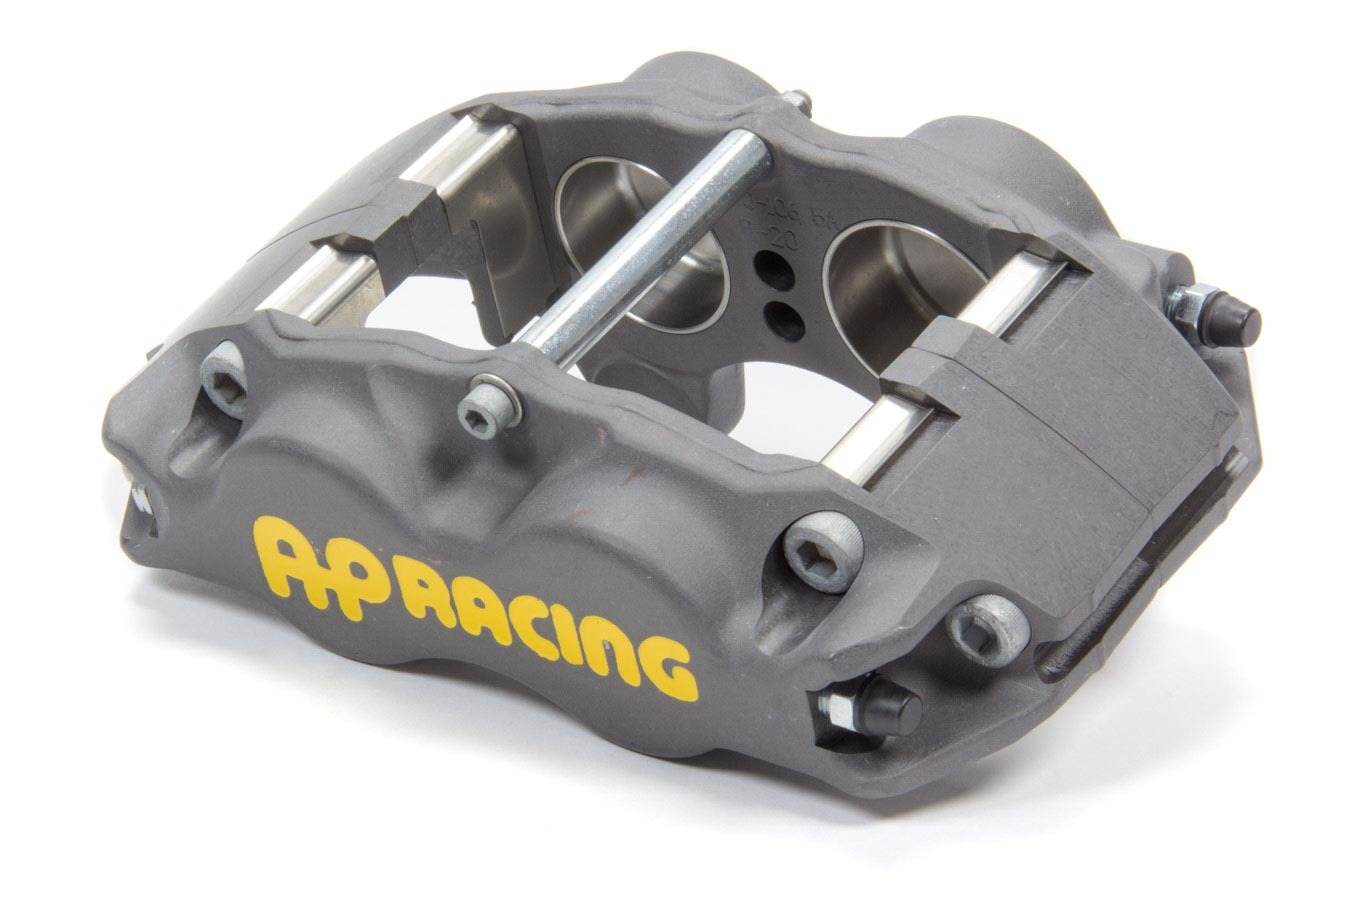 AP Brake 1902800 Brake Caliper, Passenger Side, Front, 4 Piston, Aluminum, Clear Anodize, 11.750 to 12.2 in OD x 1.250 in Thick Rotor, 3.500 in Lug Mount, Each